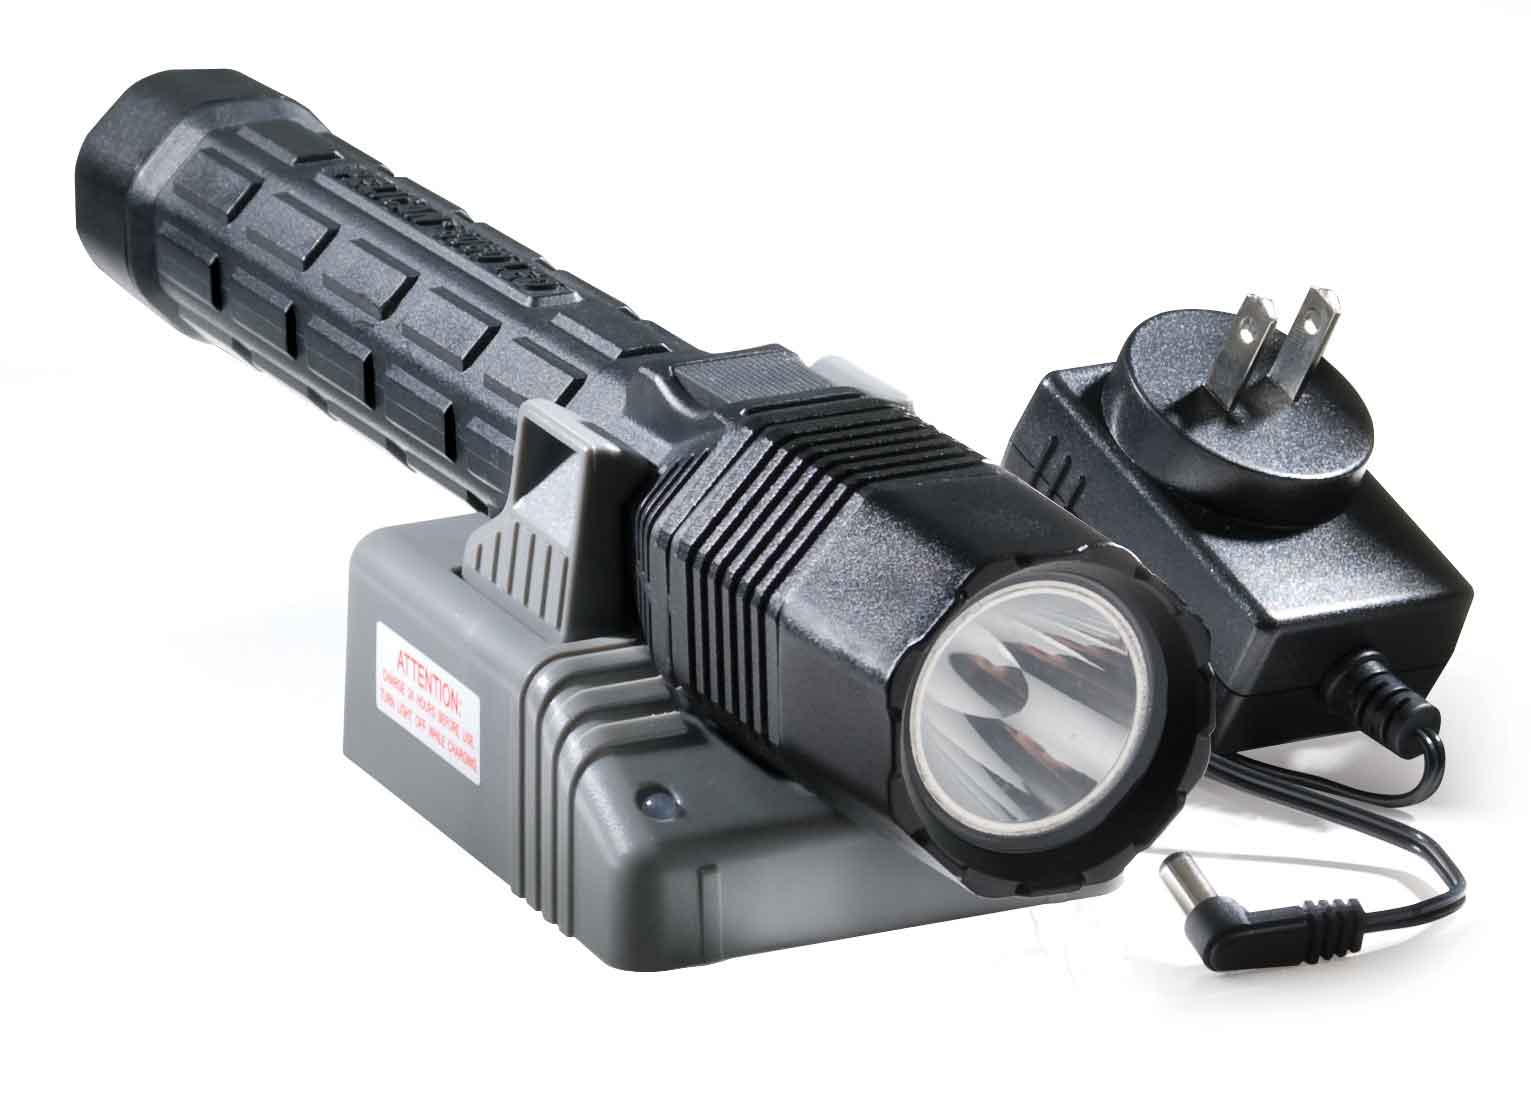 Pelican 8060 LED Rechargeable Flashlight AC from SWPS.com